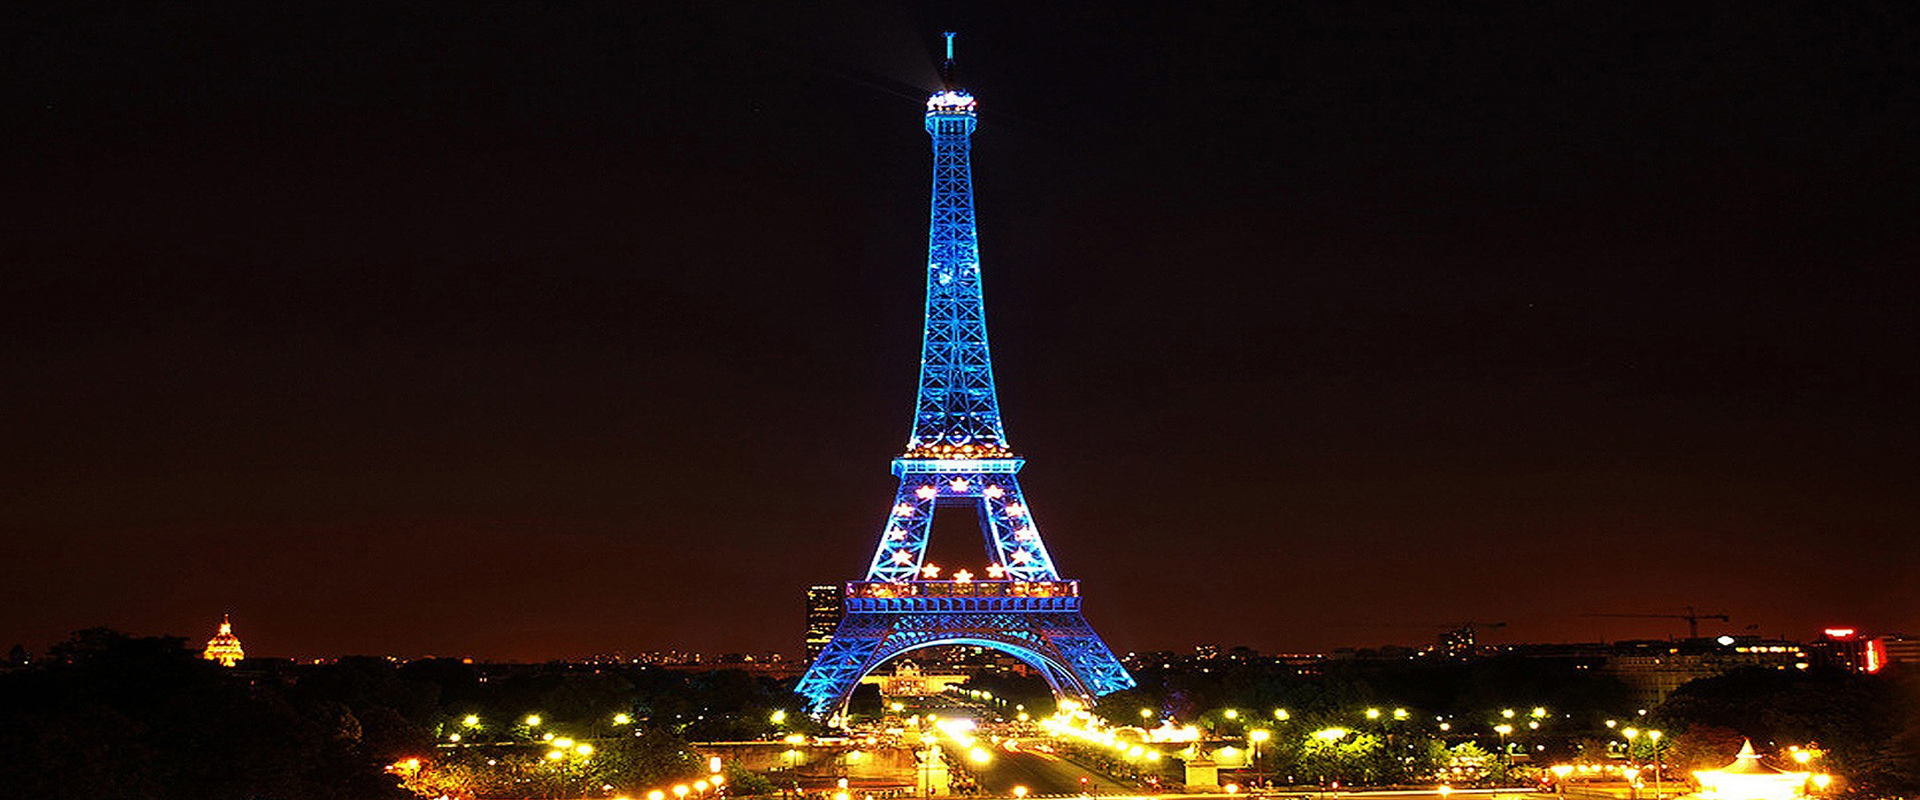 paris eiffel tower night tour poster background night view eiffel background image for free. Black Bedroom Furniture Sets. Home Design Ideas